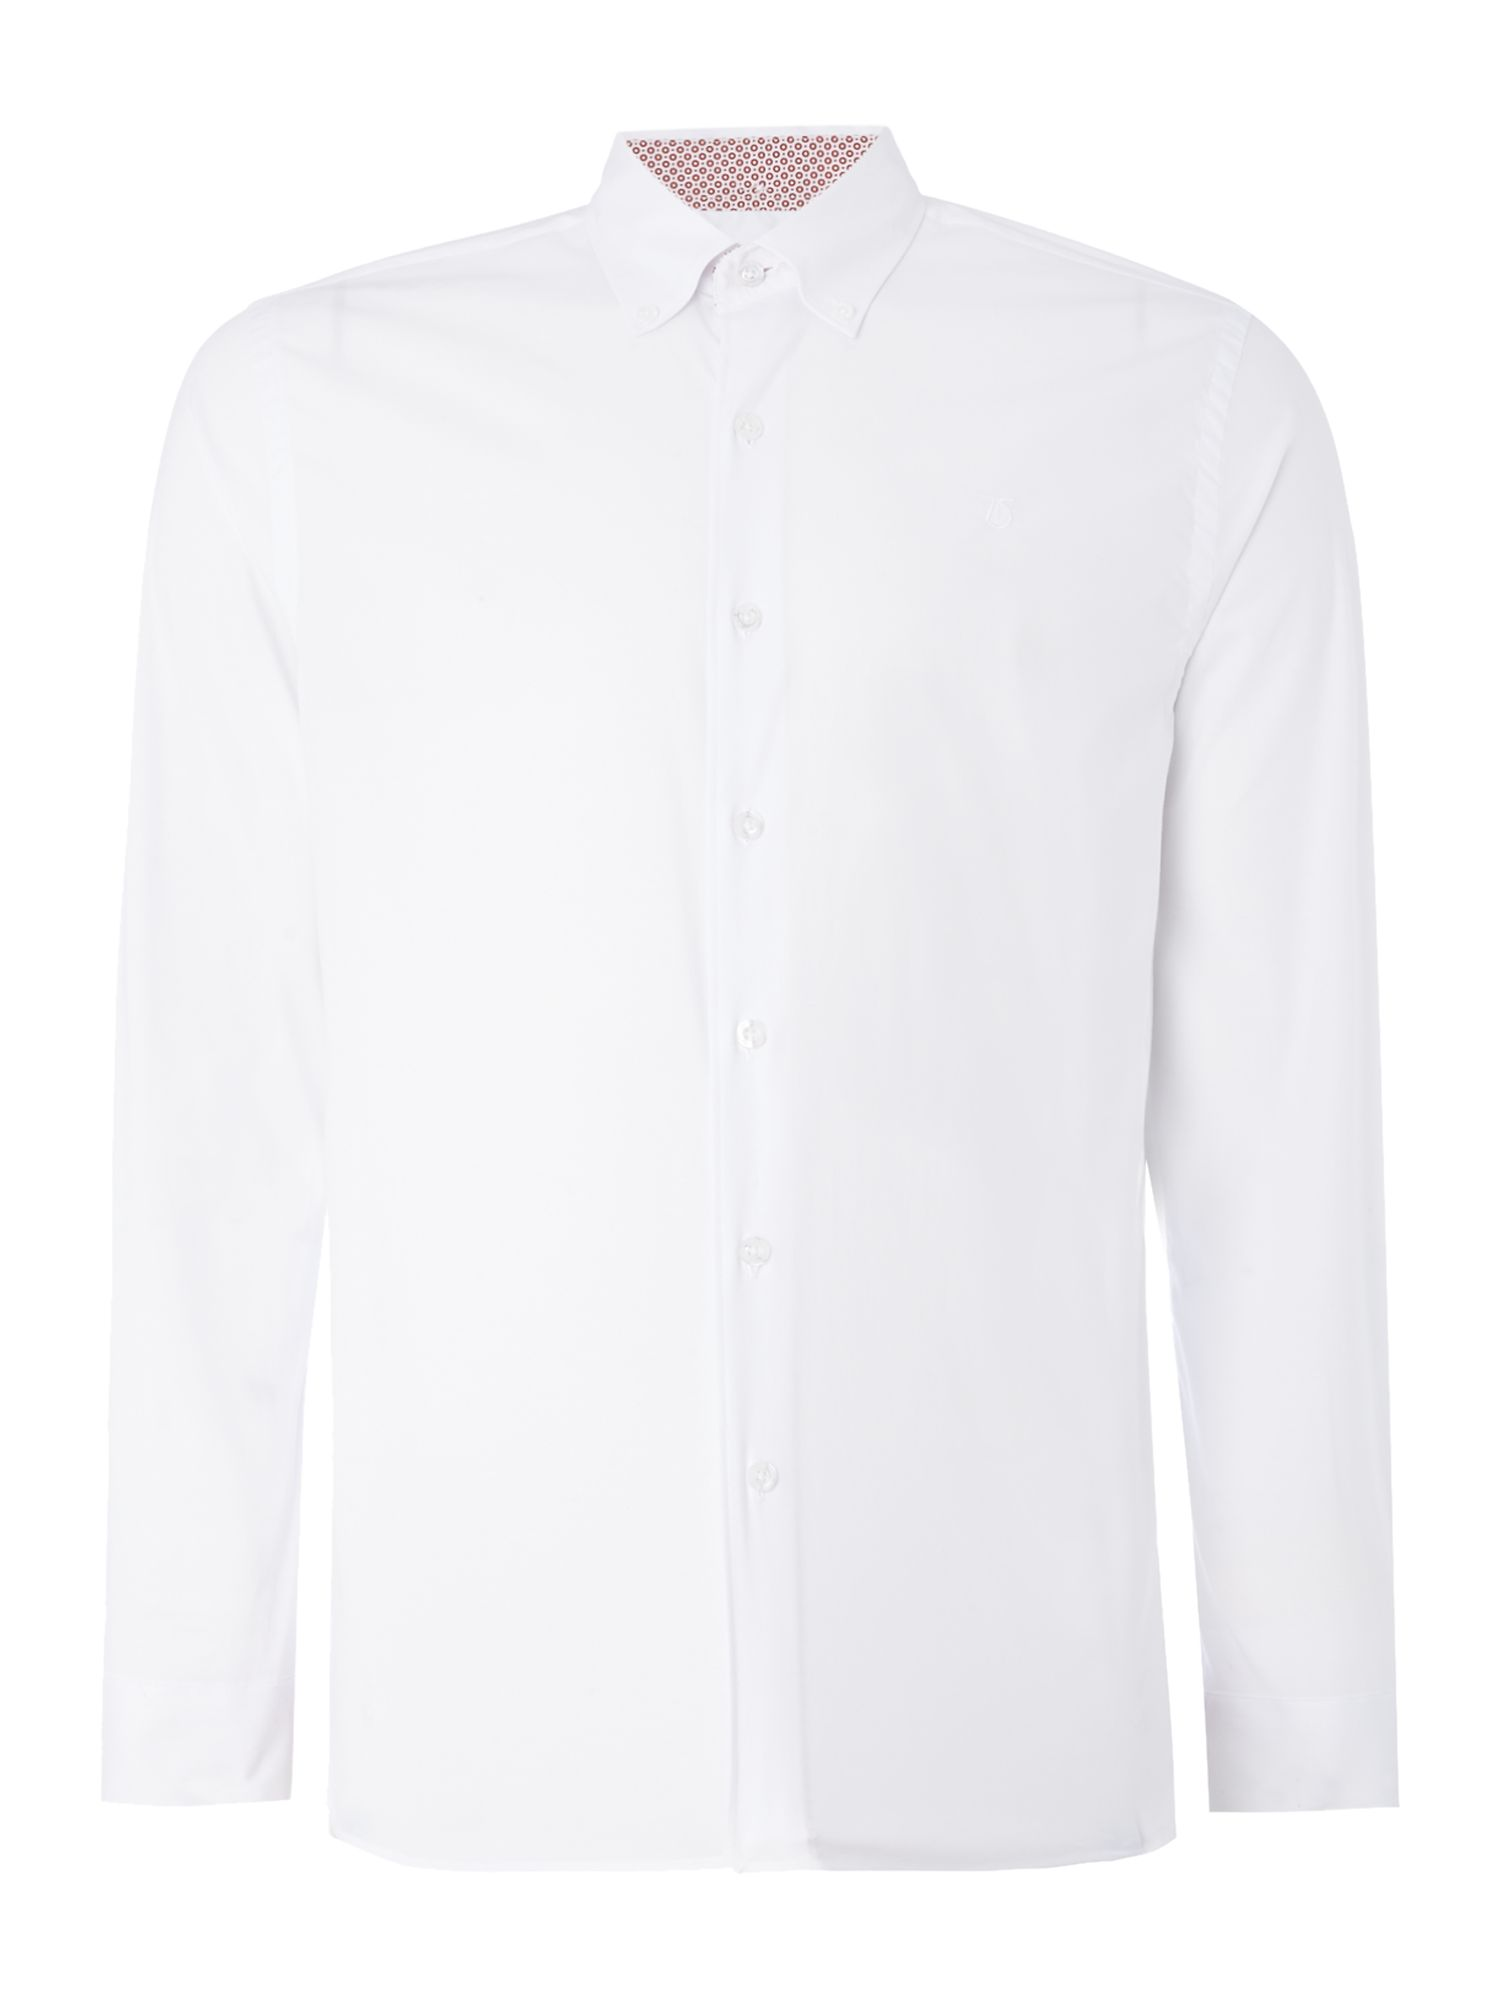 Men's Peter Werth Project Cotton Shirt With Printed Trim, White